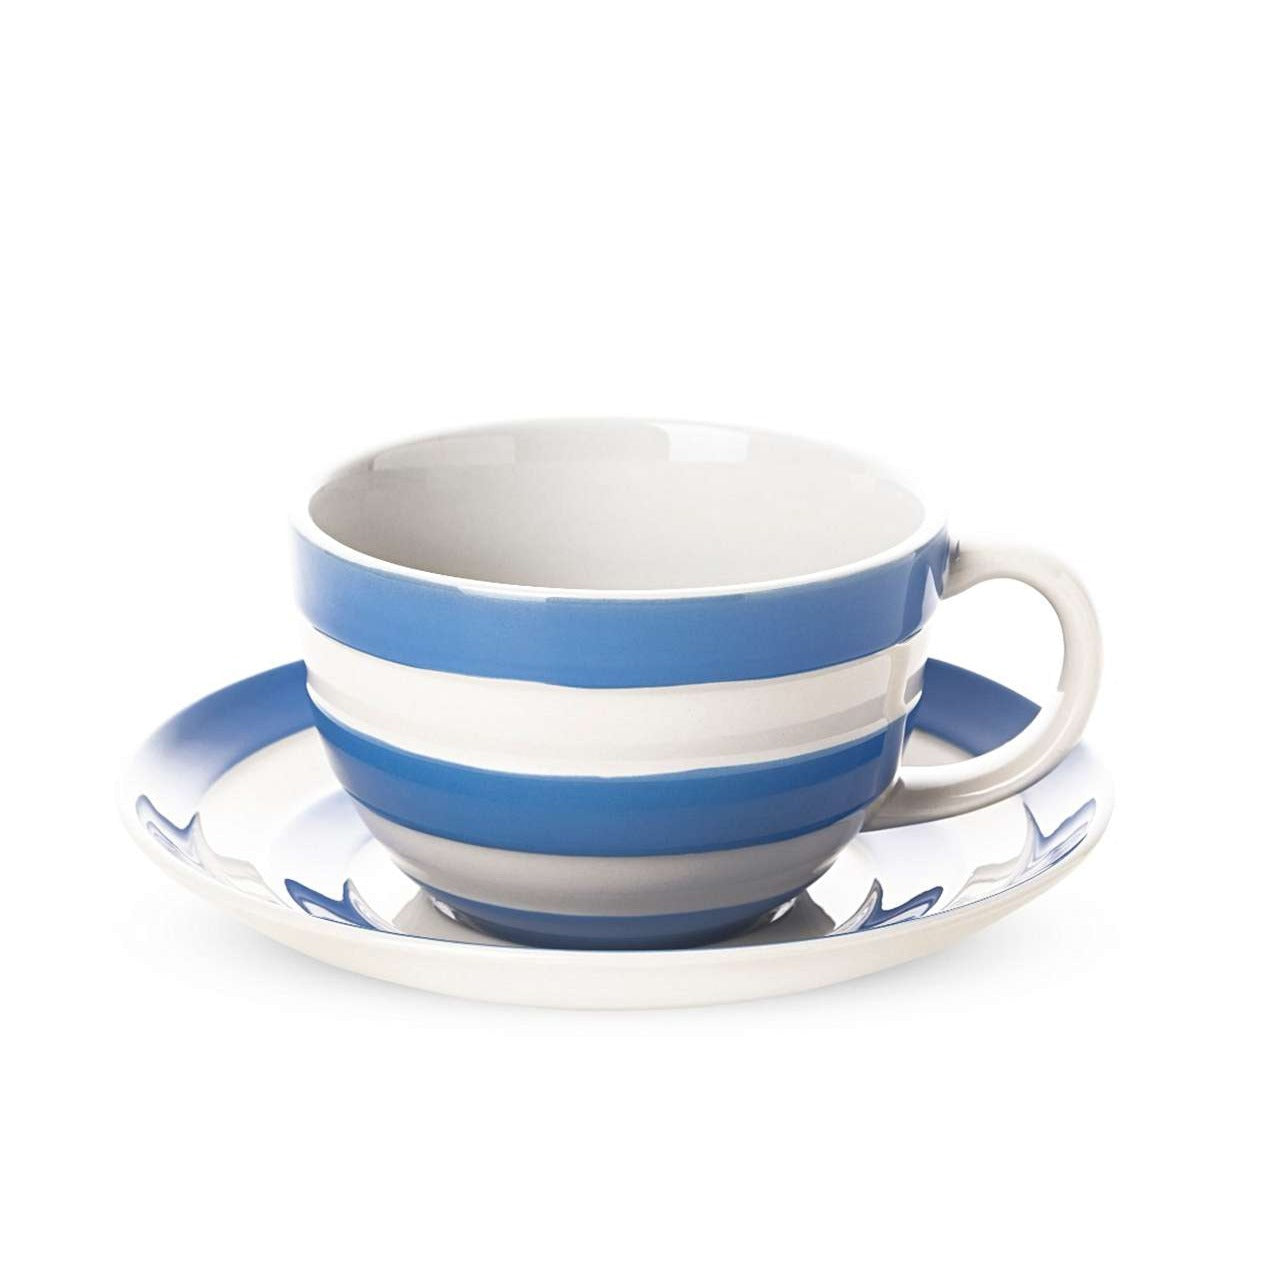 Cornishware Blue Breakfast Cup and Saucer